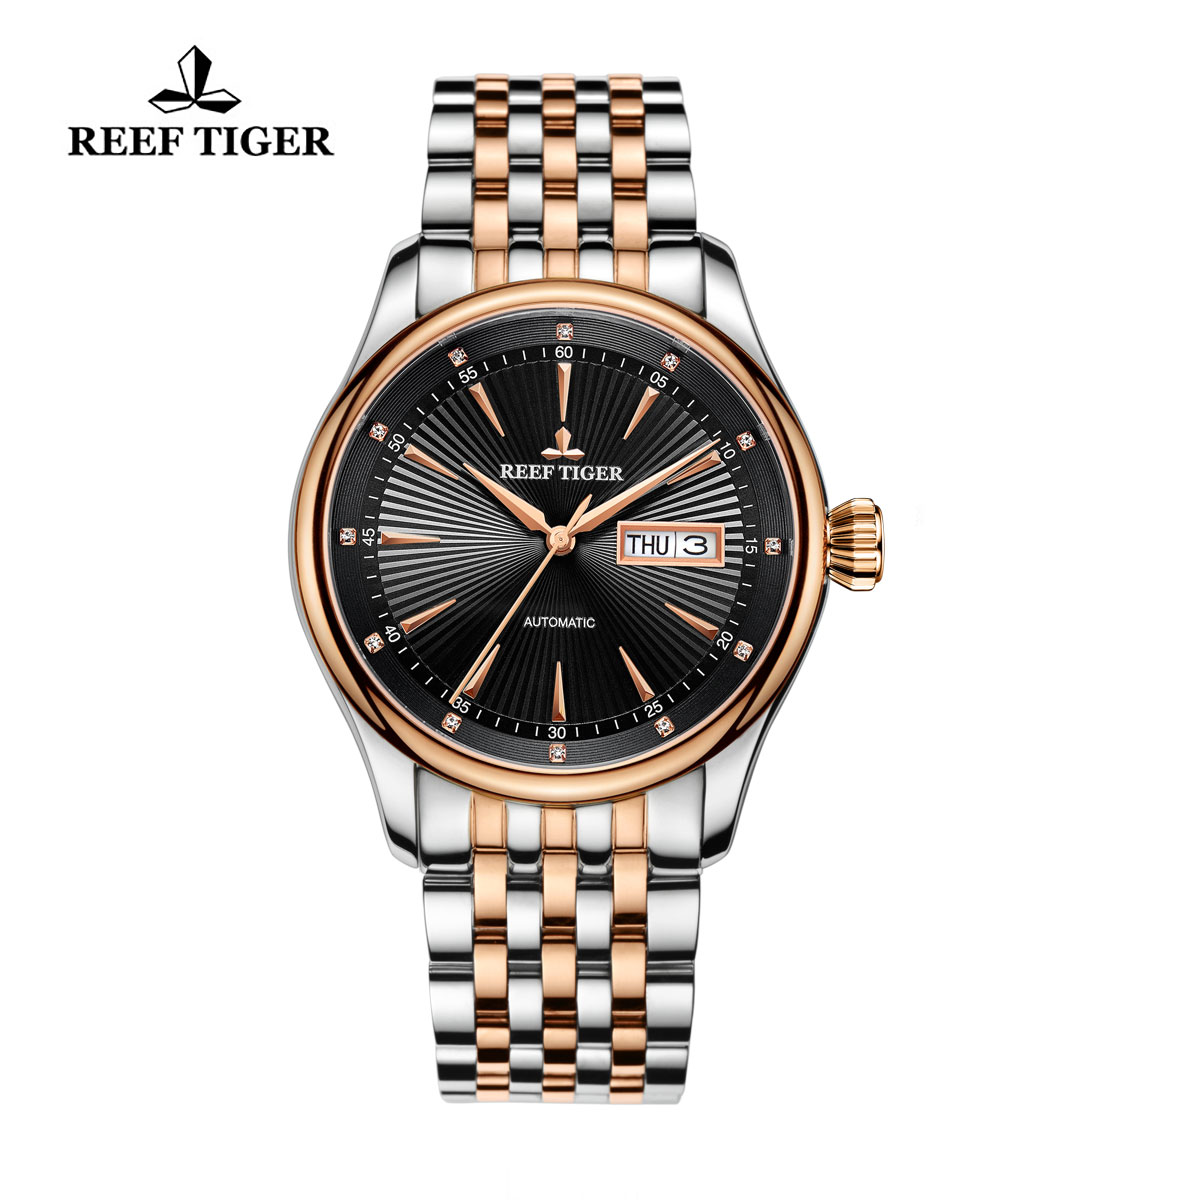 Reef Tiger Heritage II Dress Watch Automatic Black Dial Two Tone Case RGA8232-PBT